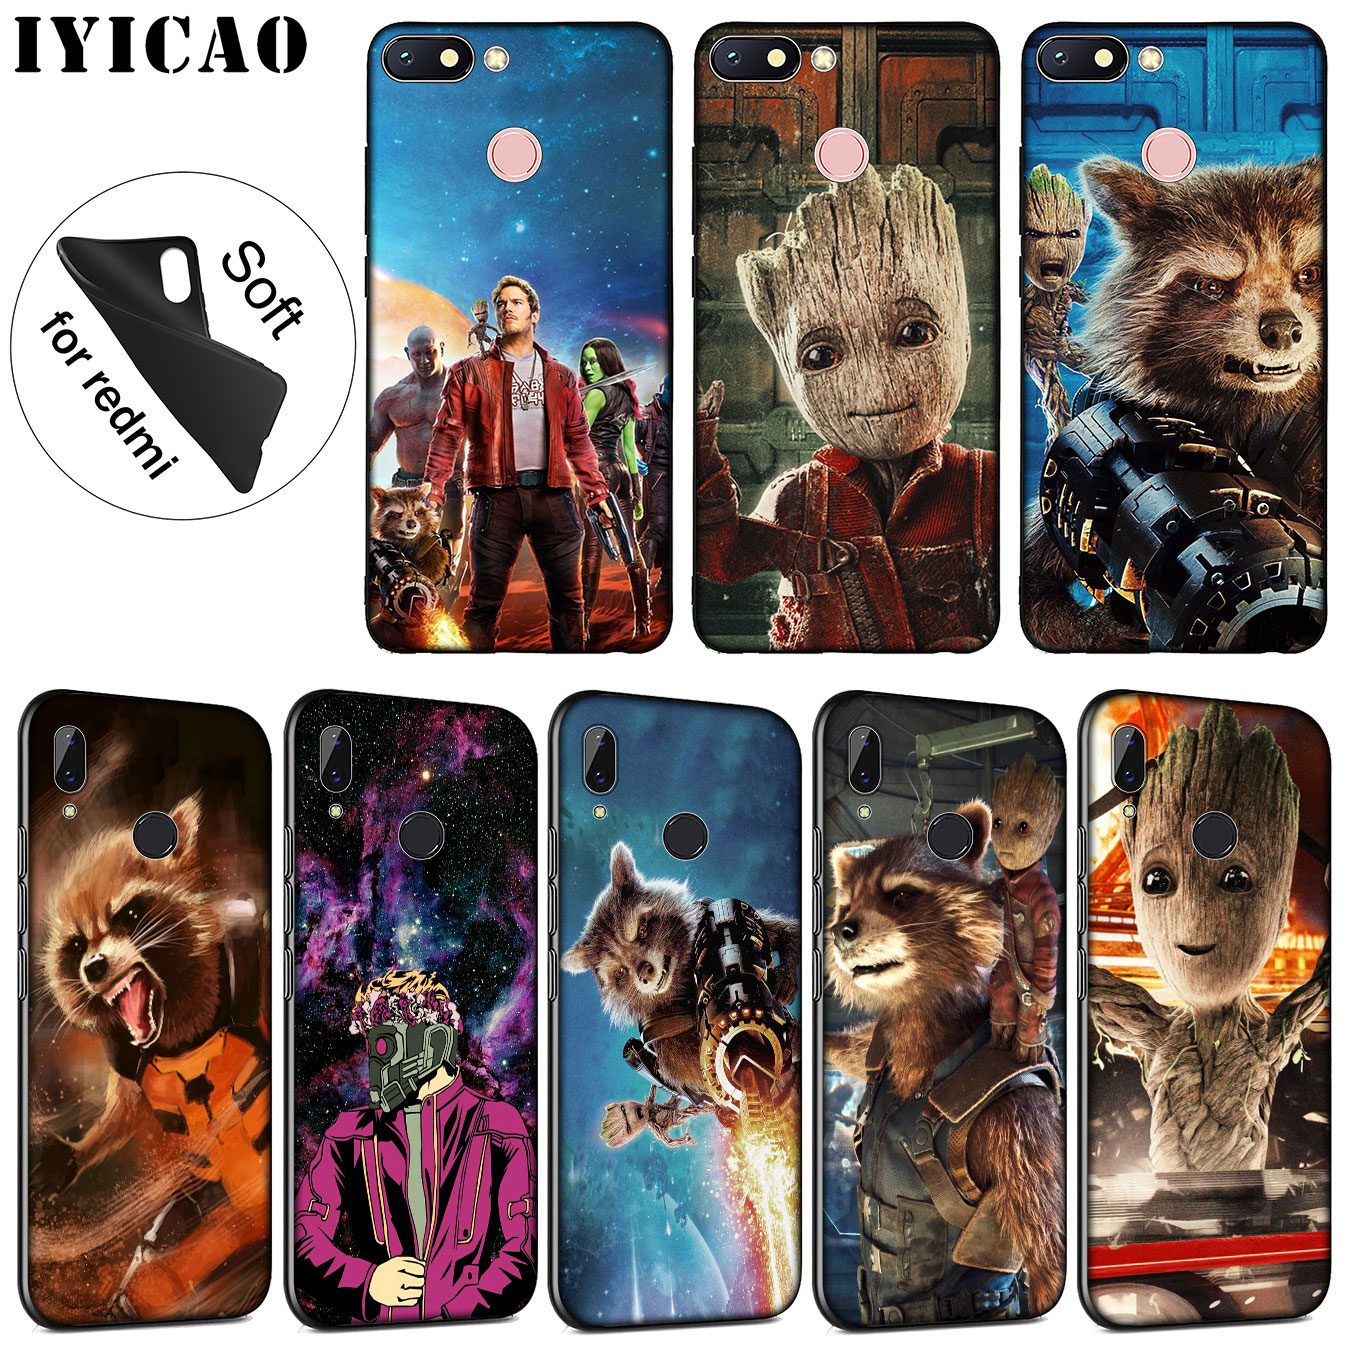 IYICAO Guardians of the for Galaxy <font><b>Marvel</b></font> Soft Silicone <font><b>Case</b></font> for <font><b>Xiaomi</b></font> <font><b>Redmi</b></font> K20 8A 7A 6A 5A S2 4X 4A GO <font><b>Note</b></font> 8 7 5 Plus 6 Pro image